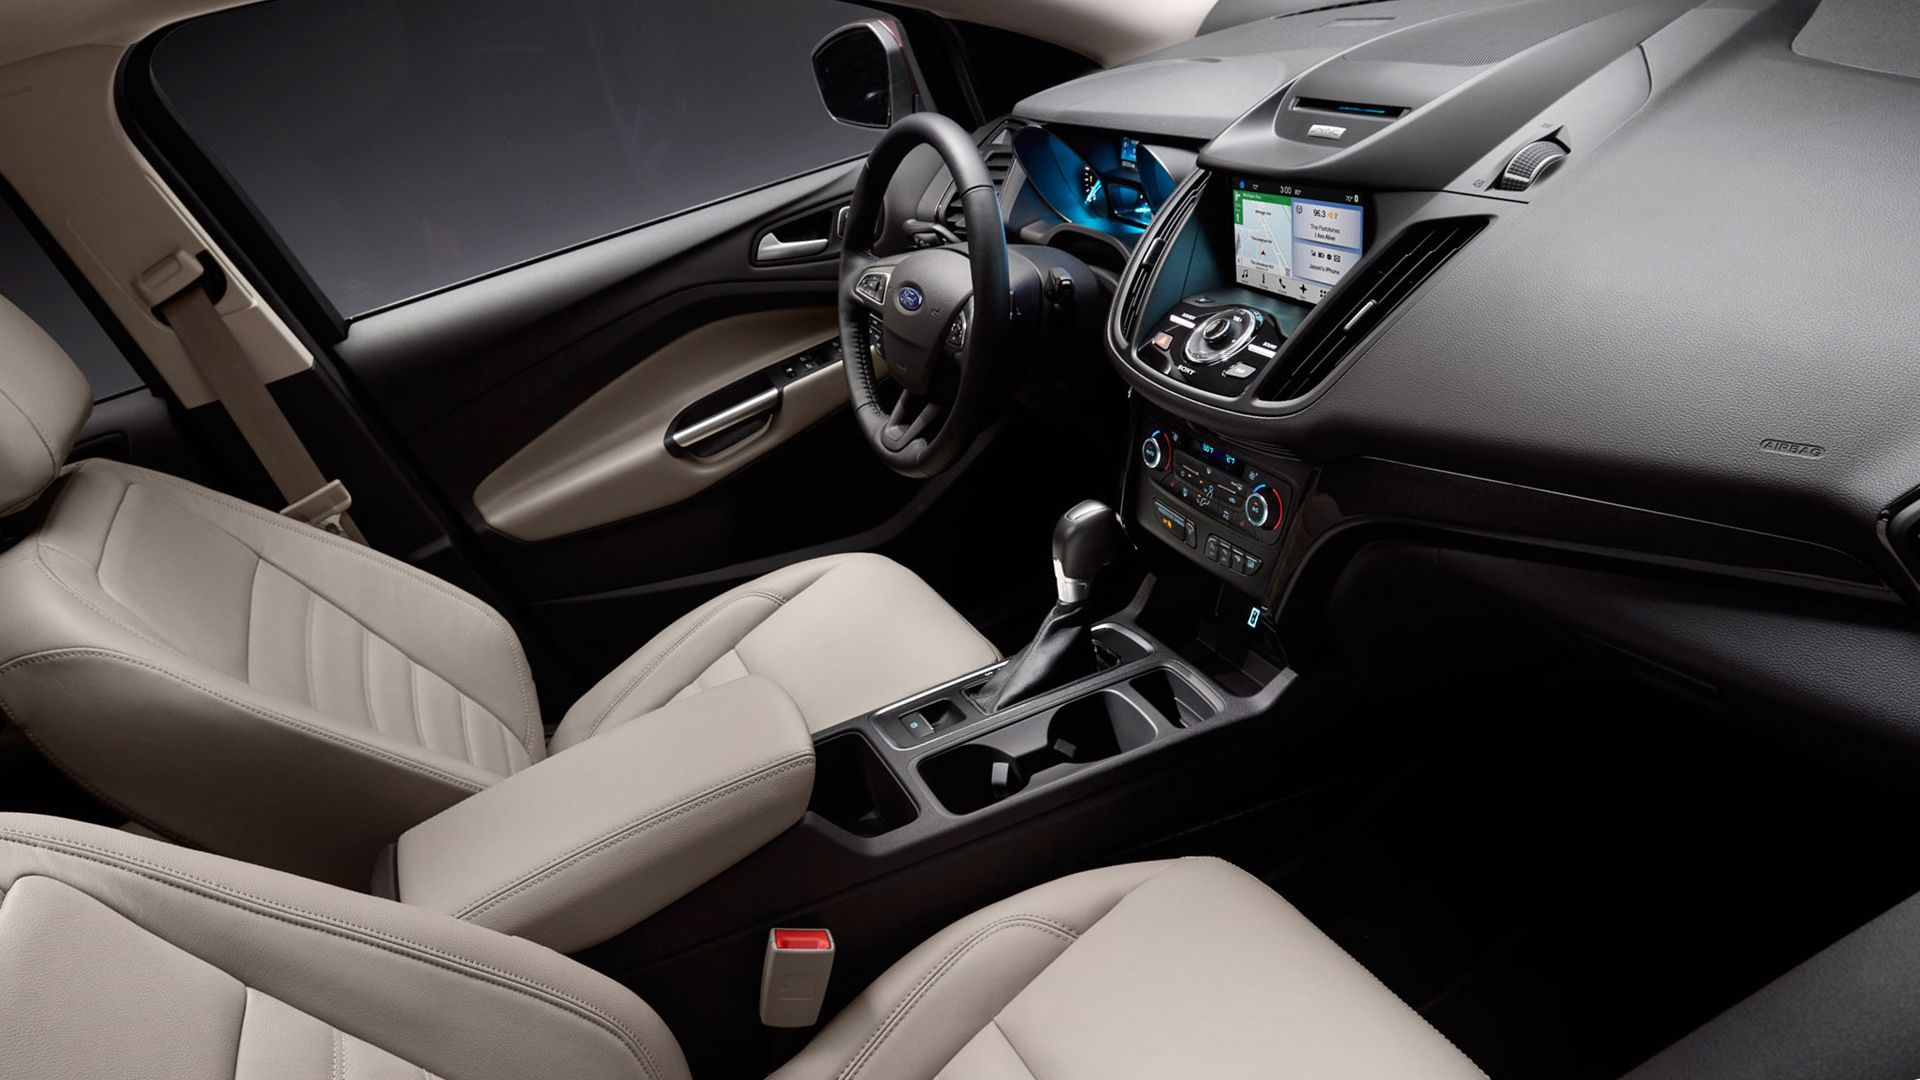 2019 Ford Kuga Interior Design